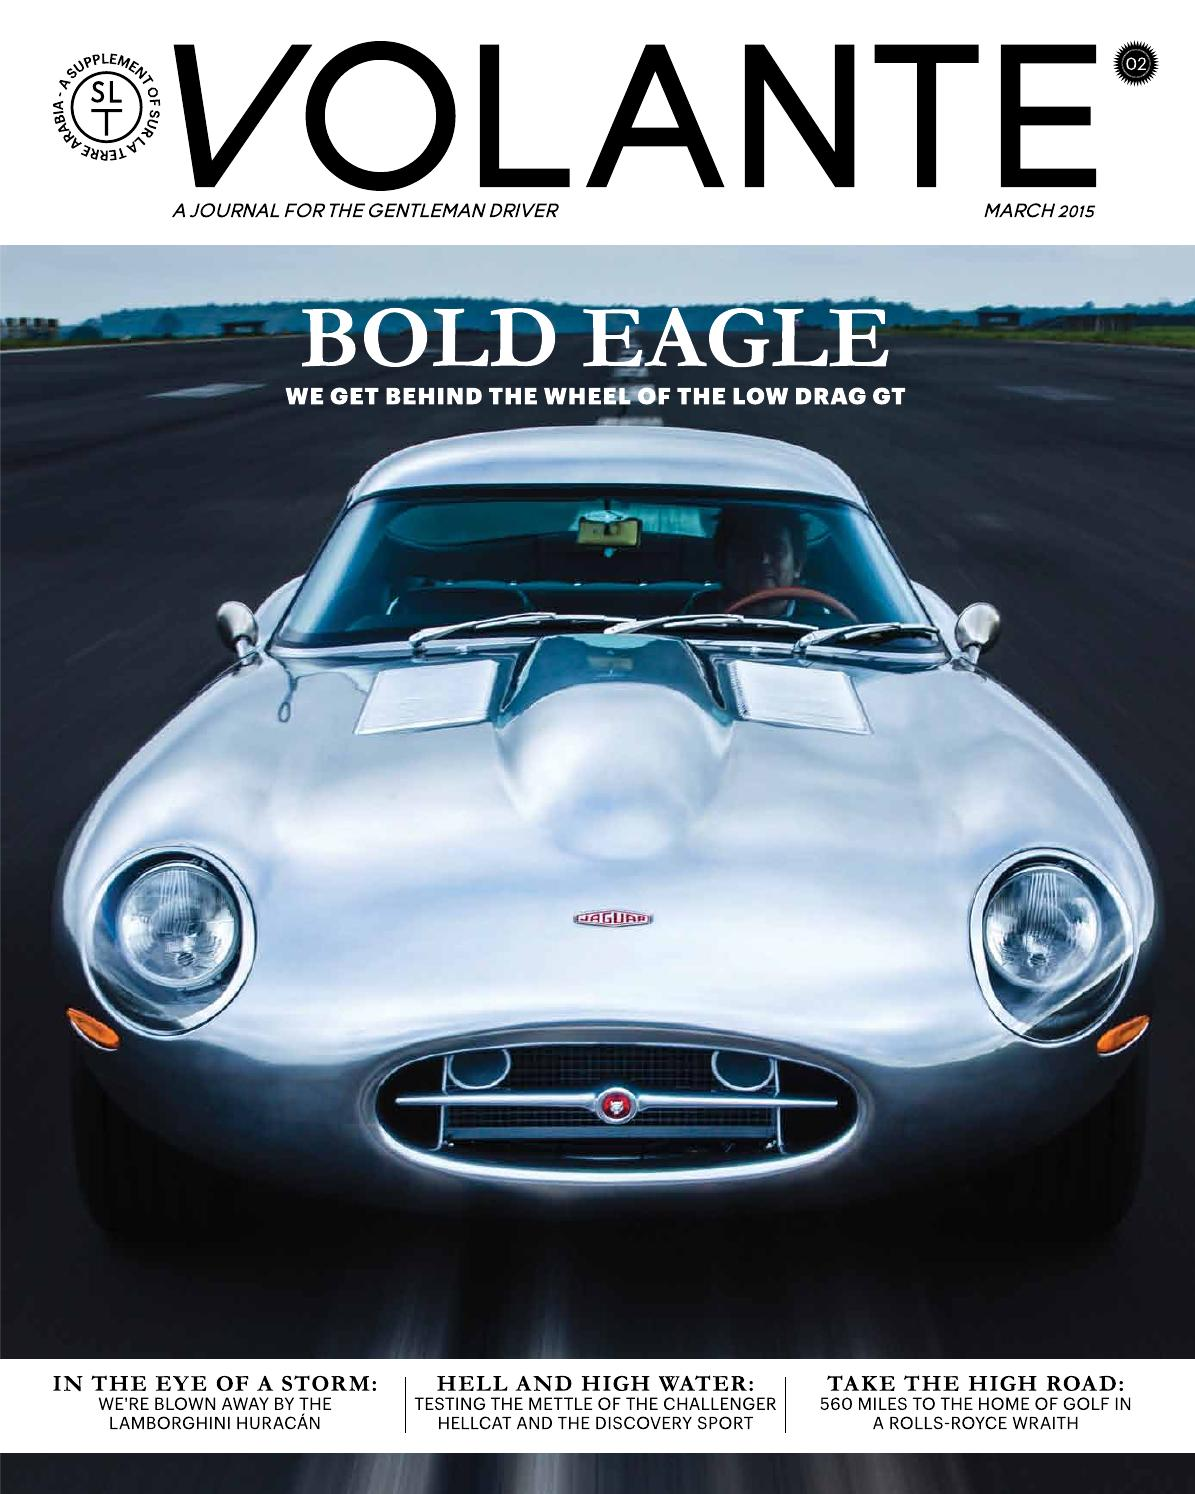 191091d313b Volante Magazine - Issue 2 - March 2015 by Firefly Communications - issuu